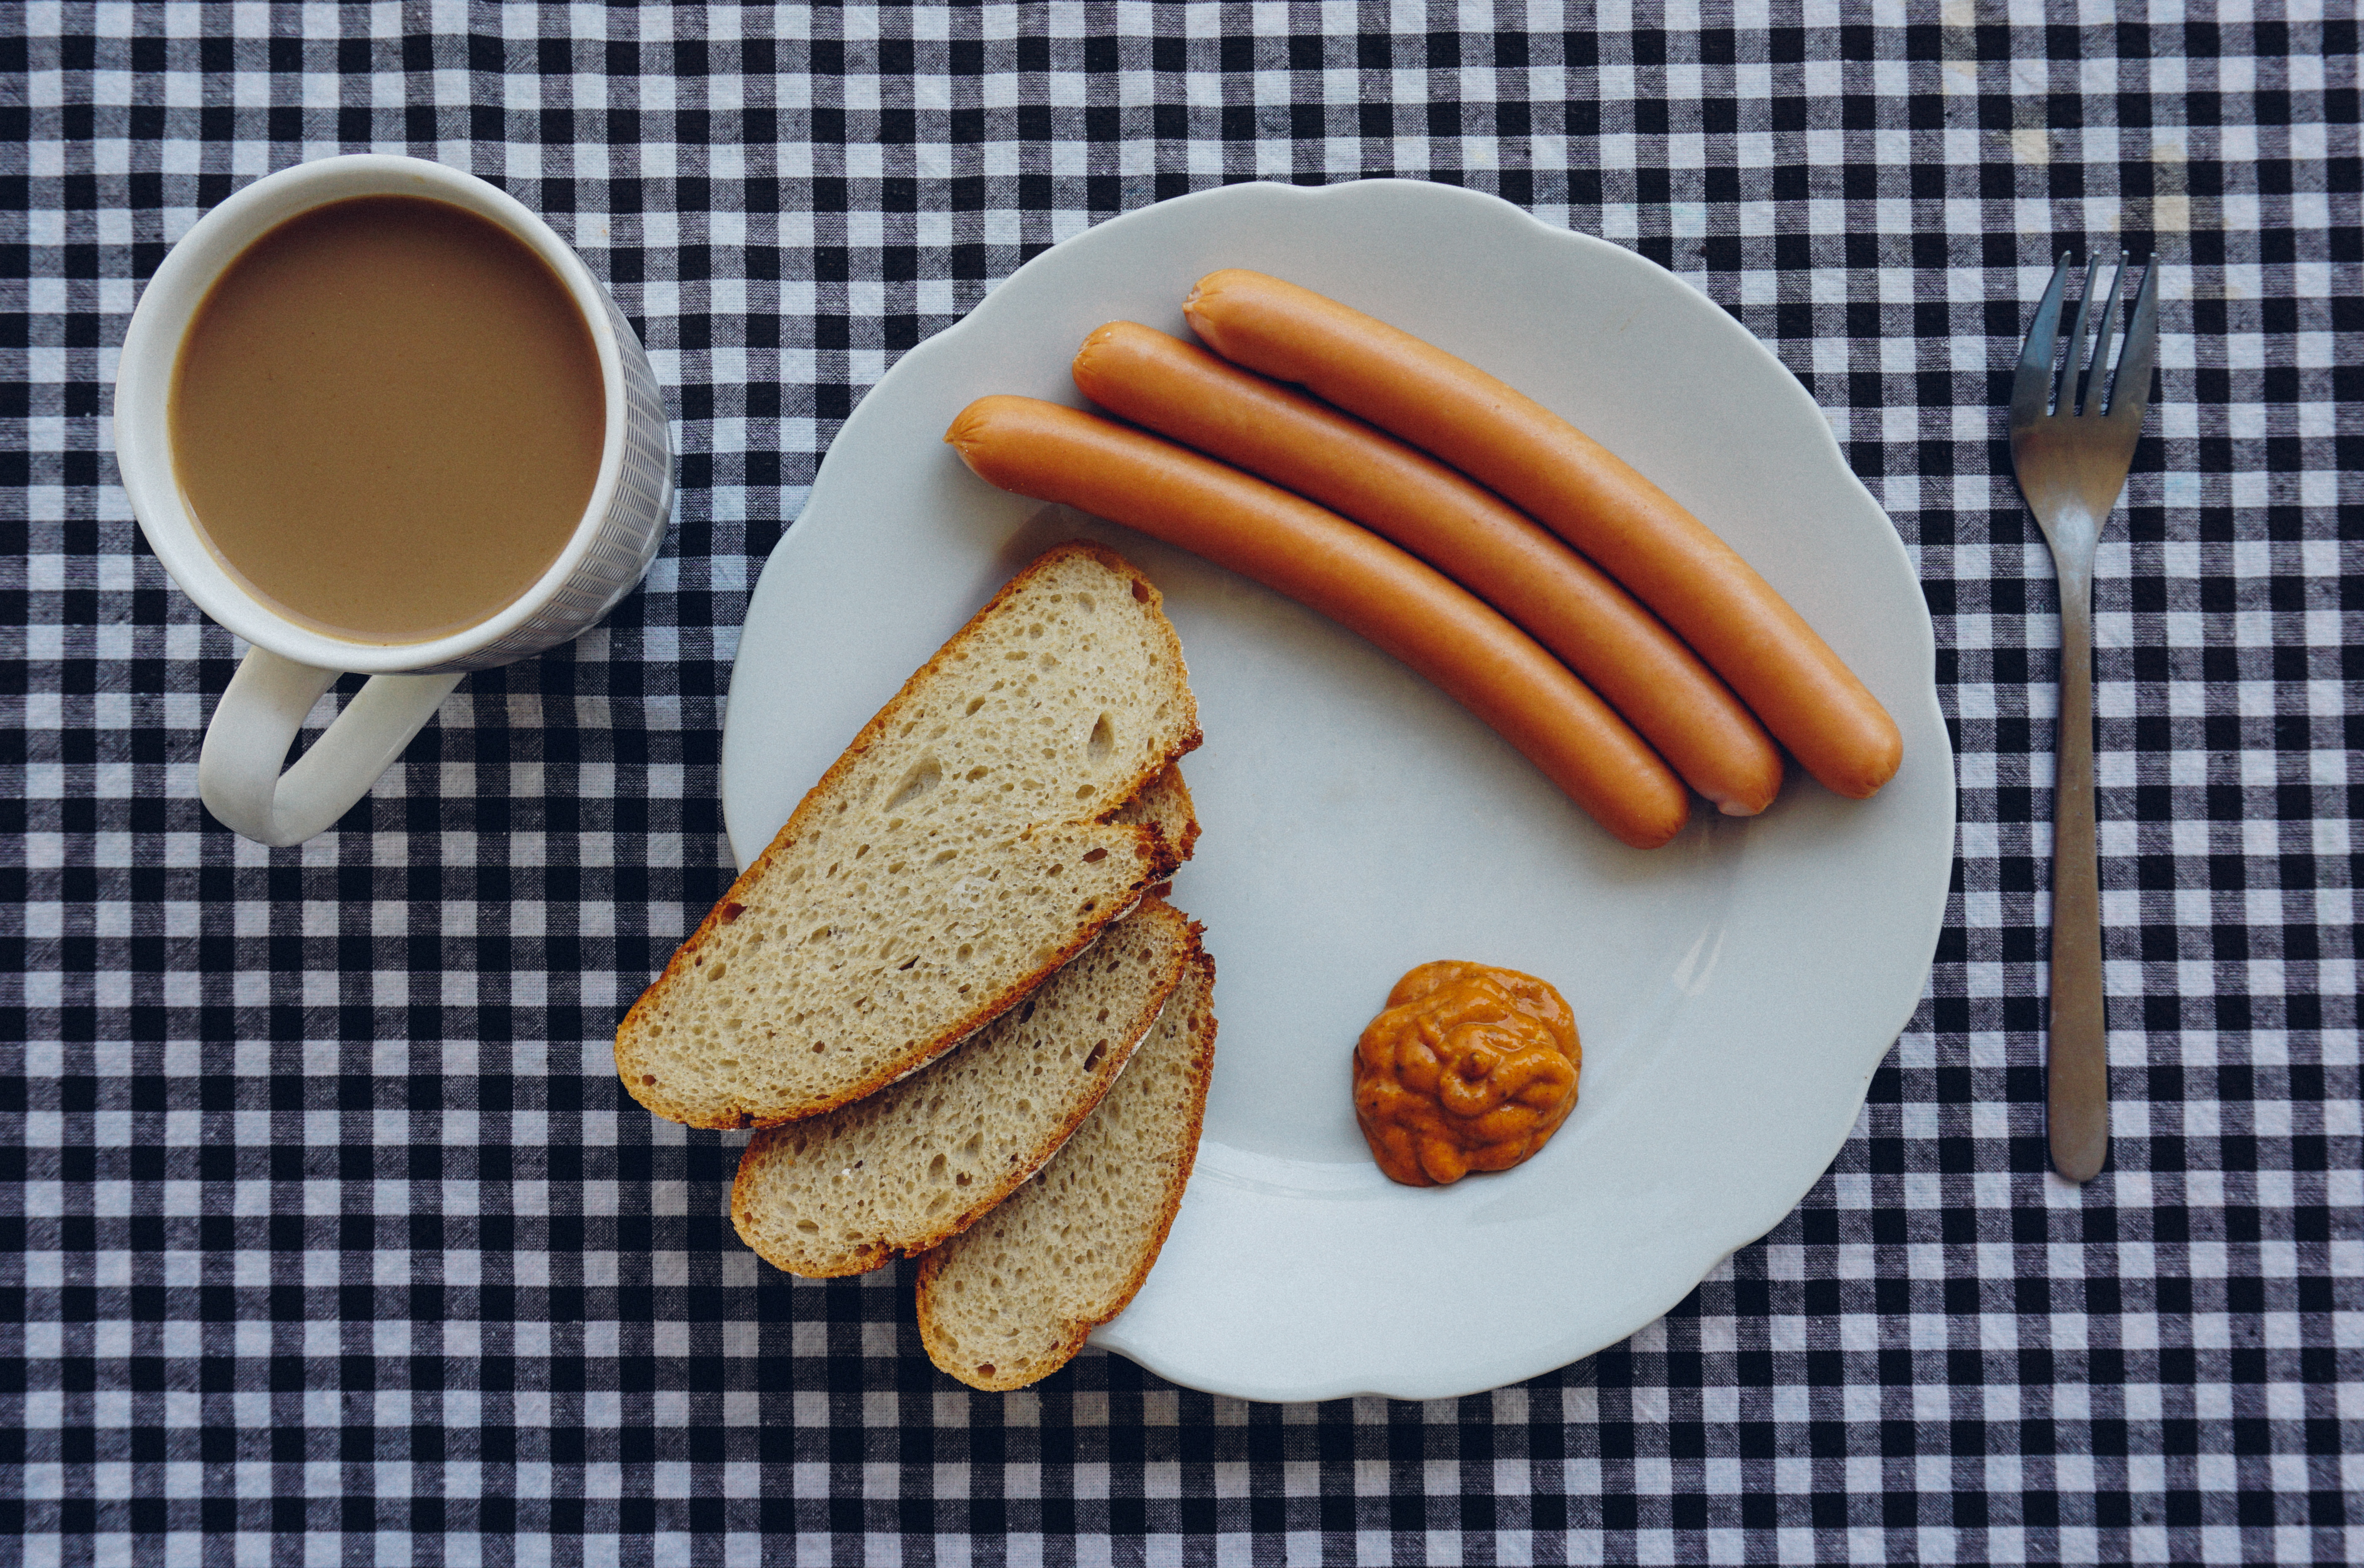 bread-coffee-wurst-breakfest-7789.jpg (5701×3781)